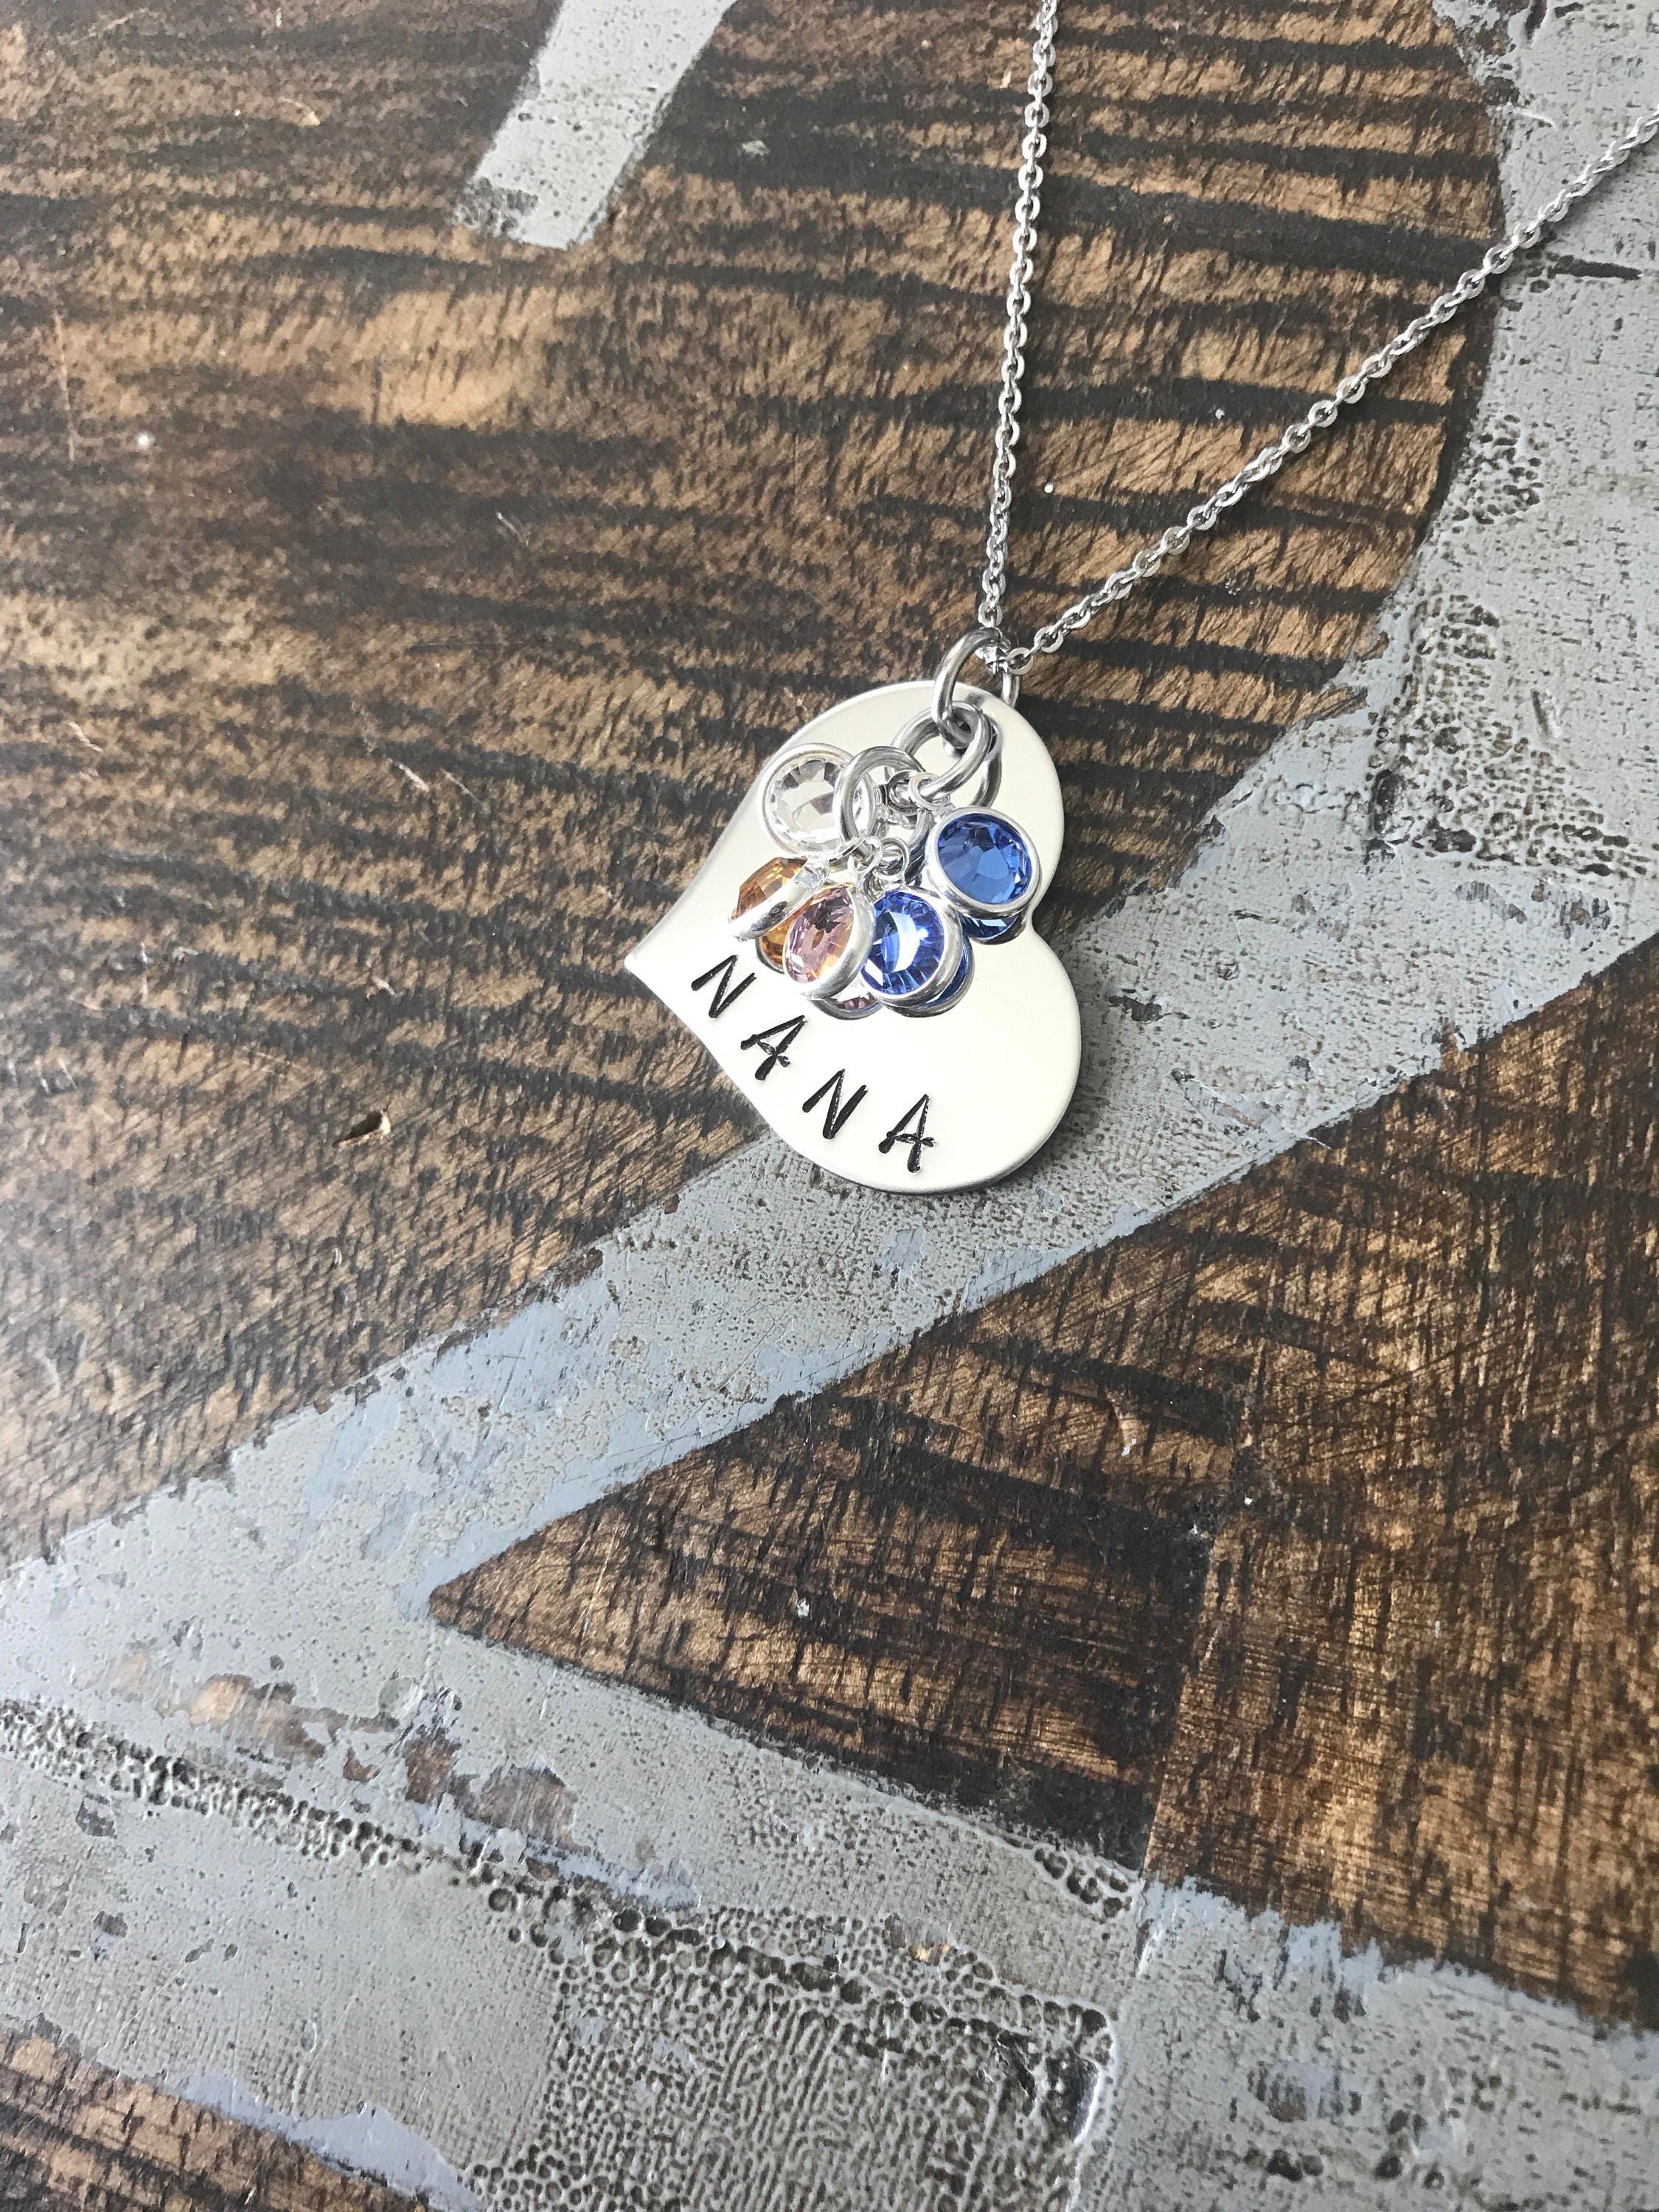 jewelry com silver in birthstone walmart s over mother keepsake grandkid personalized gold family available pendant sterling ip necklace heart